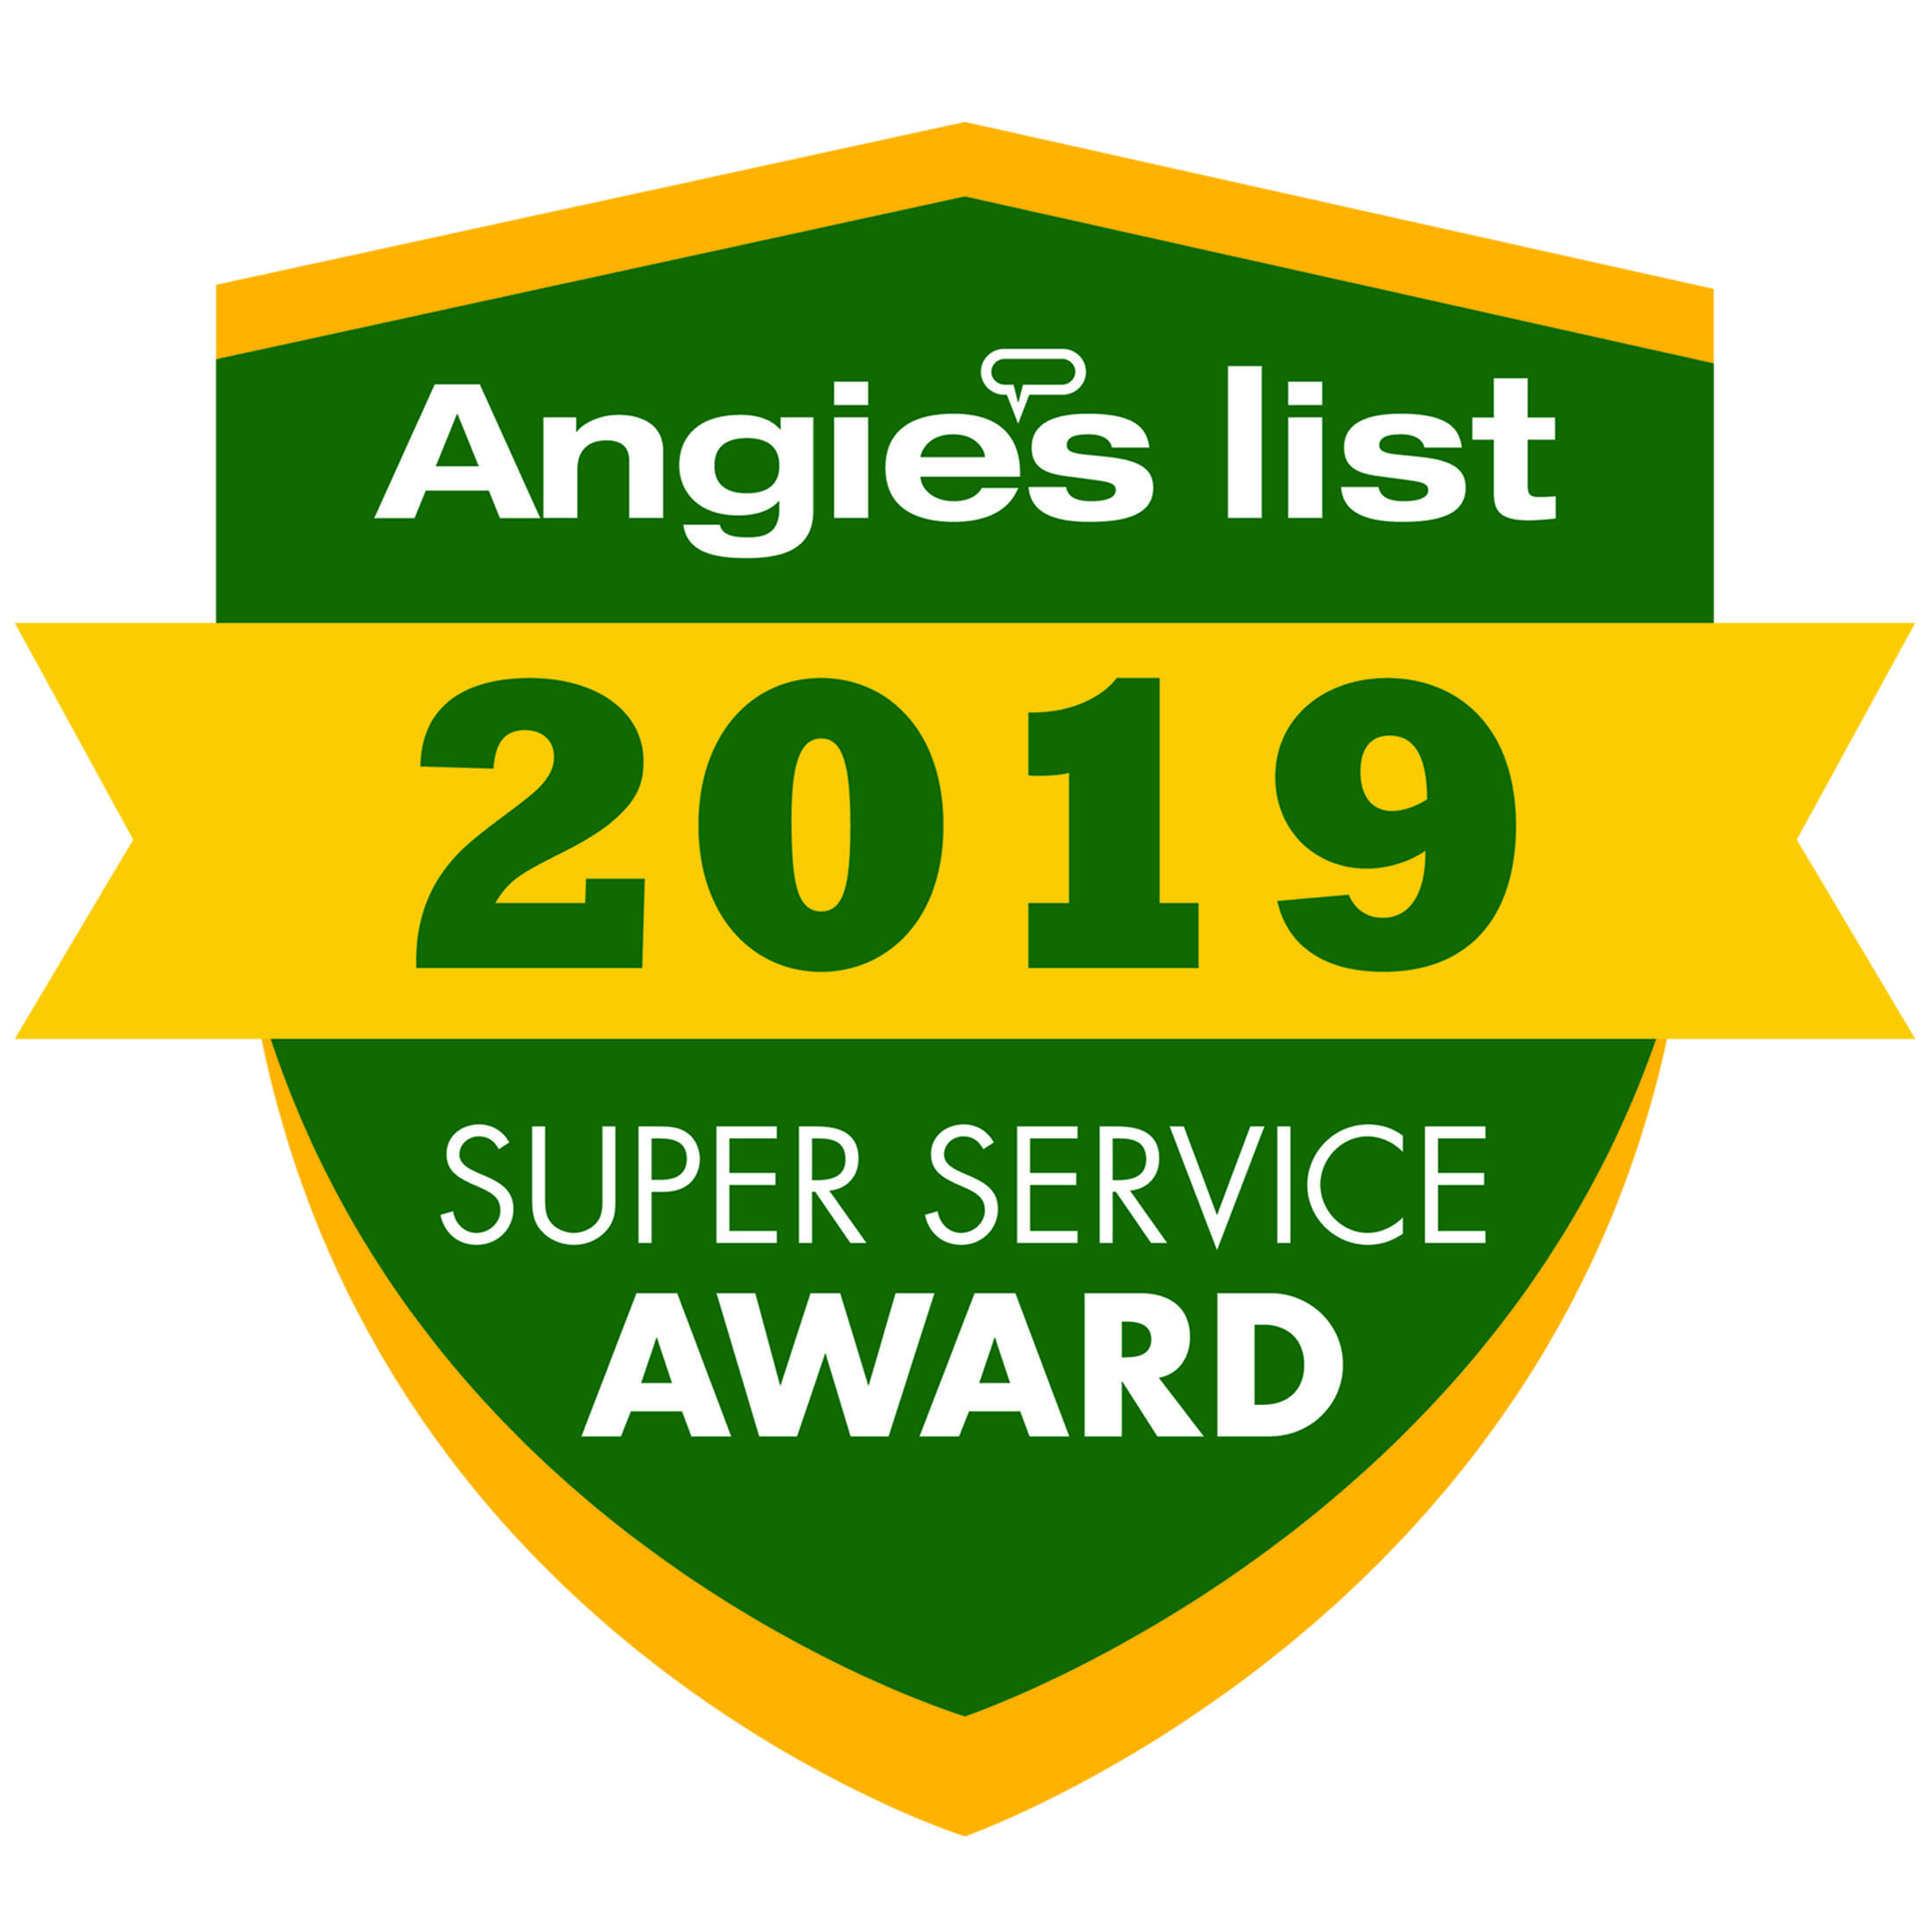 2019 Super Service Award, Angie's List, Angie, 2019 Award, Kellogg Movers, Moving Company, SLC, Utah